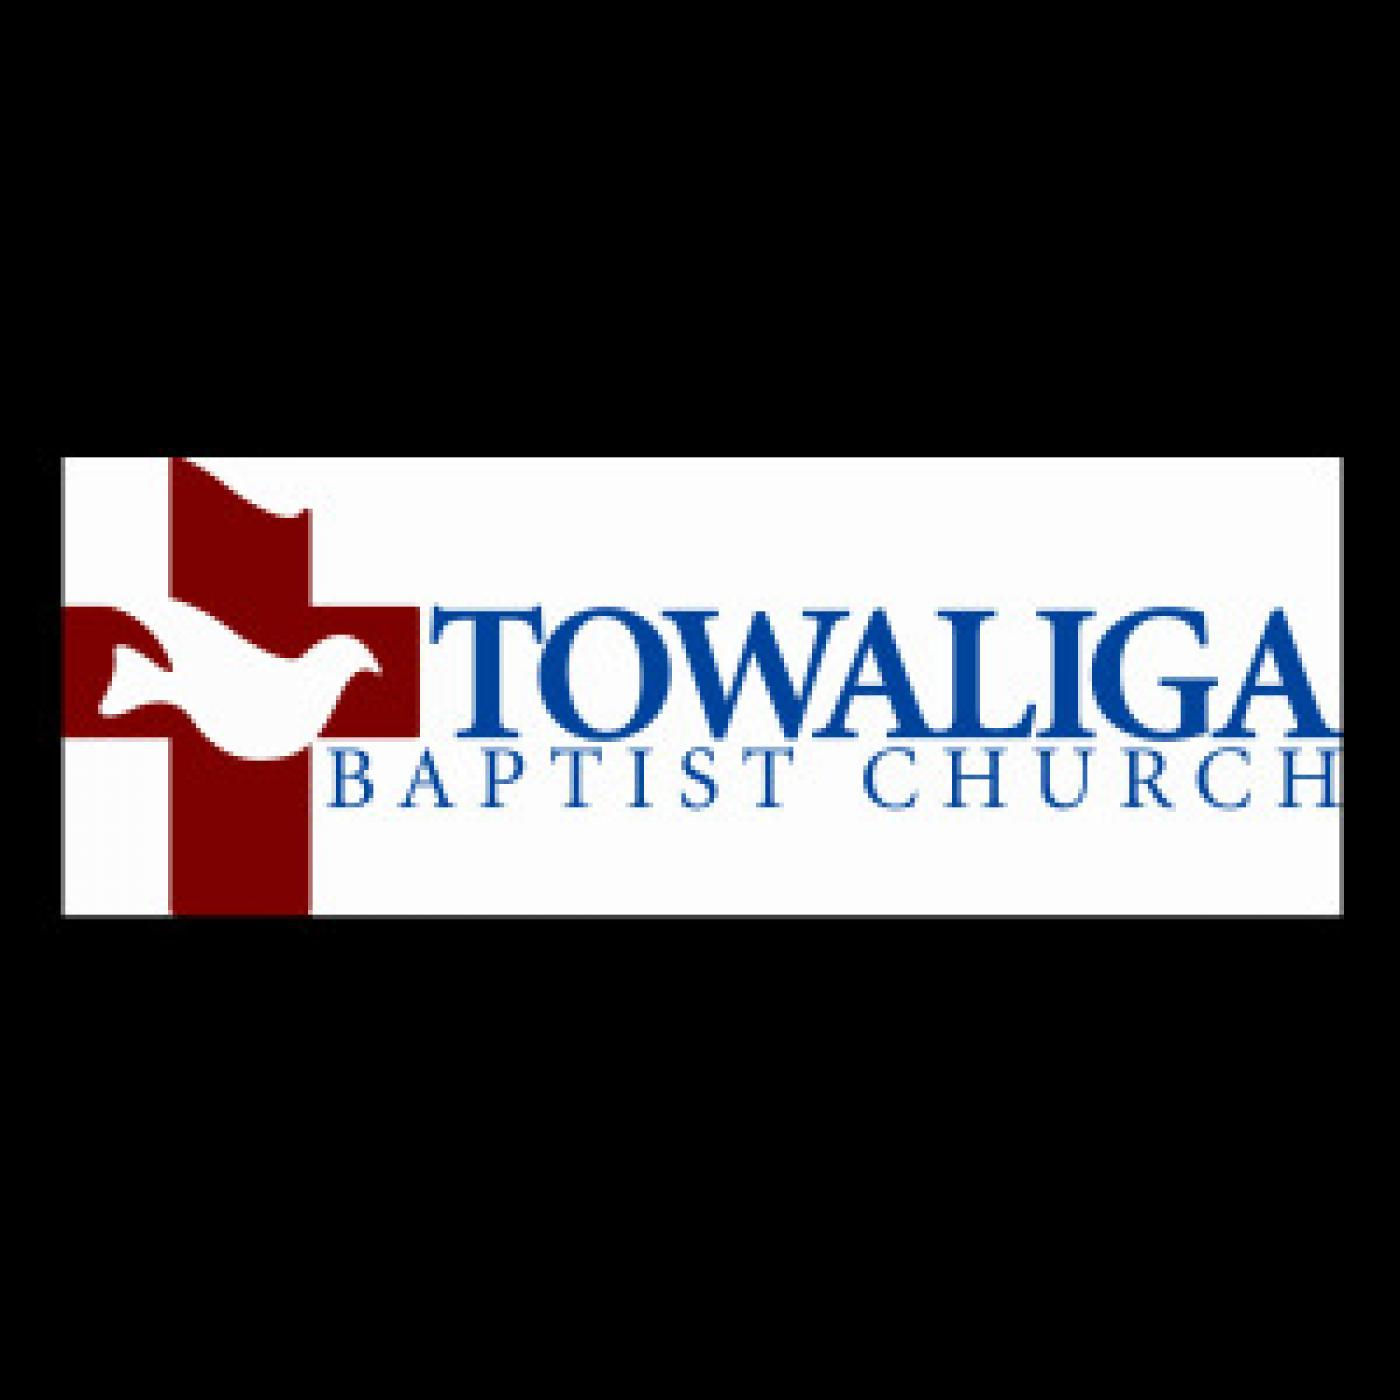 Towaliga Baptist Church